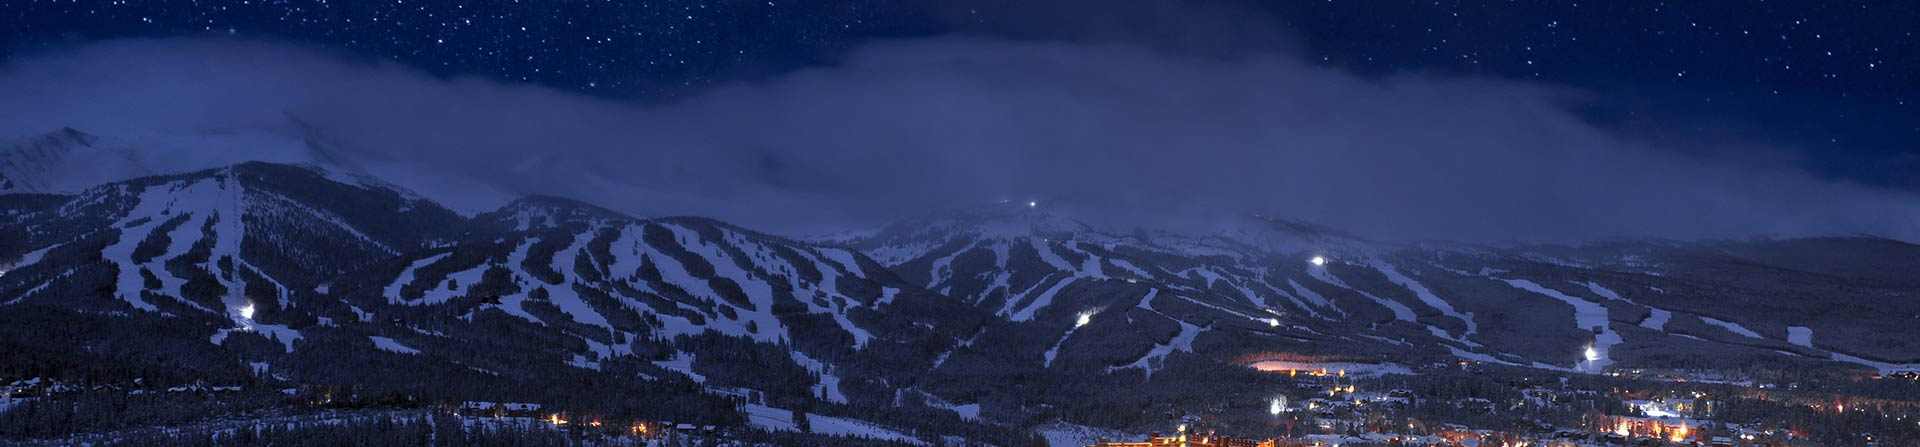 Nighttime in Breckenridge, CO 1920x450